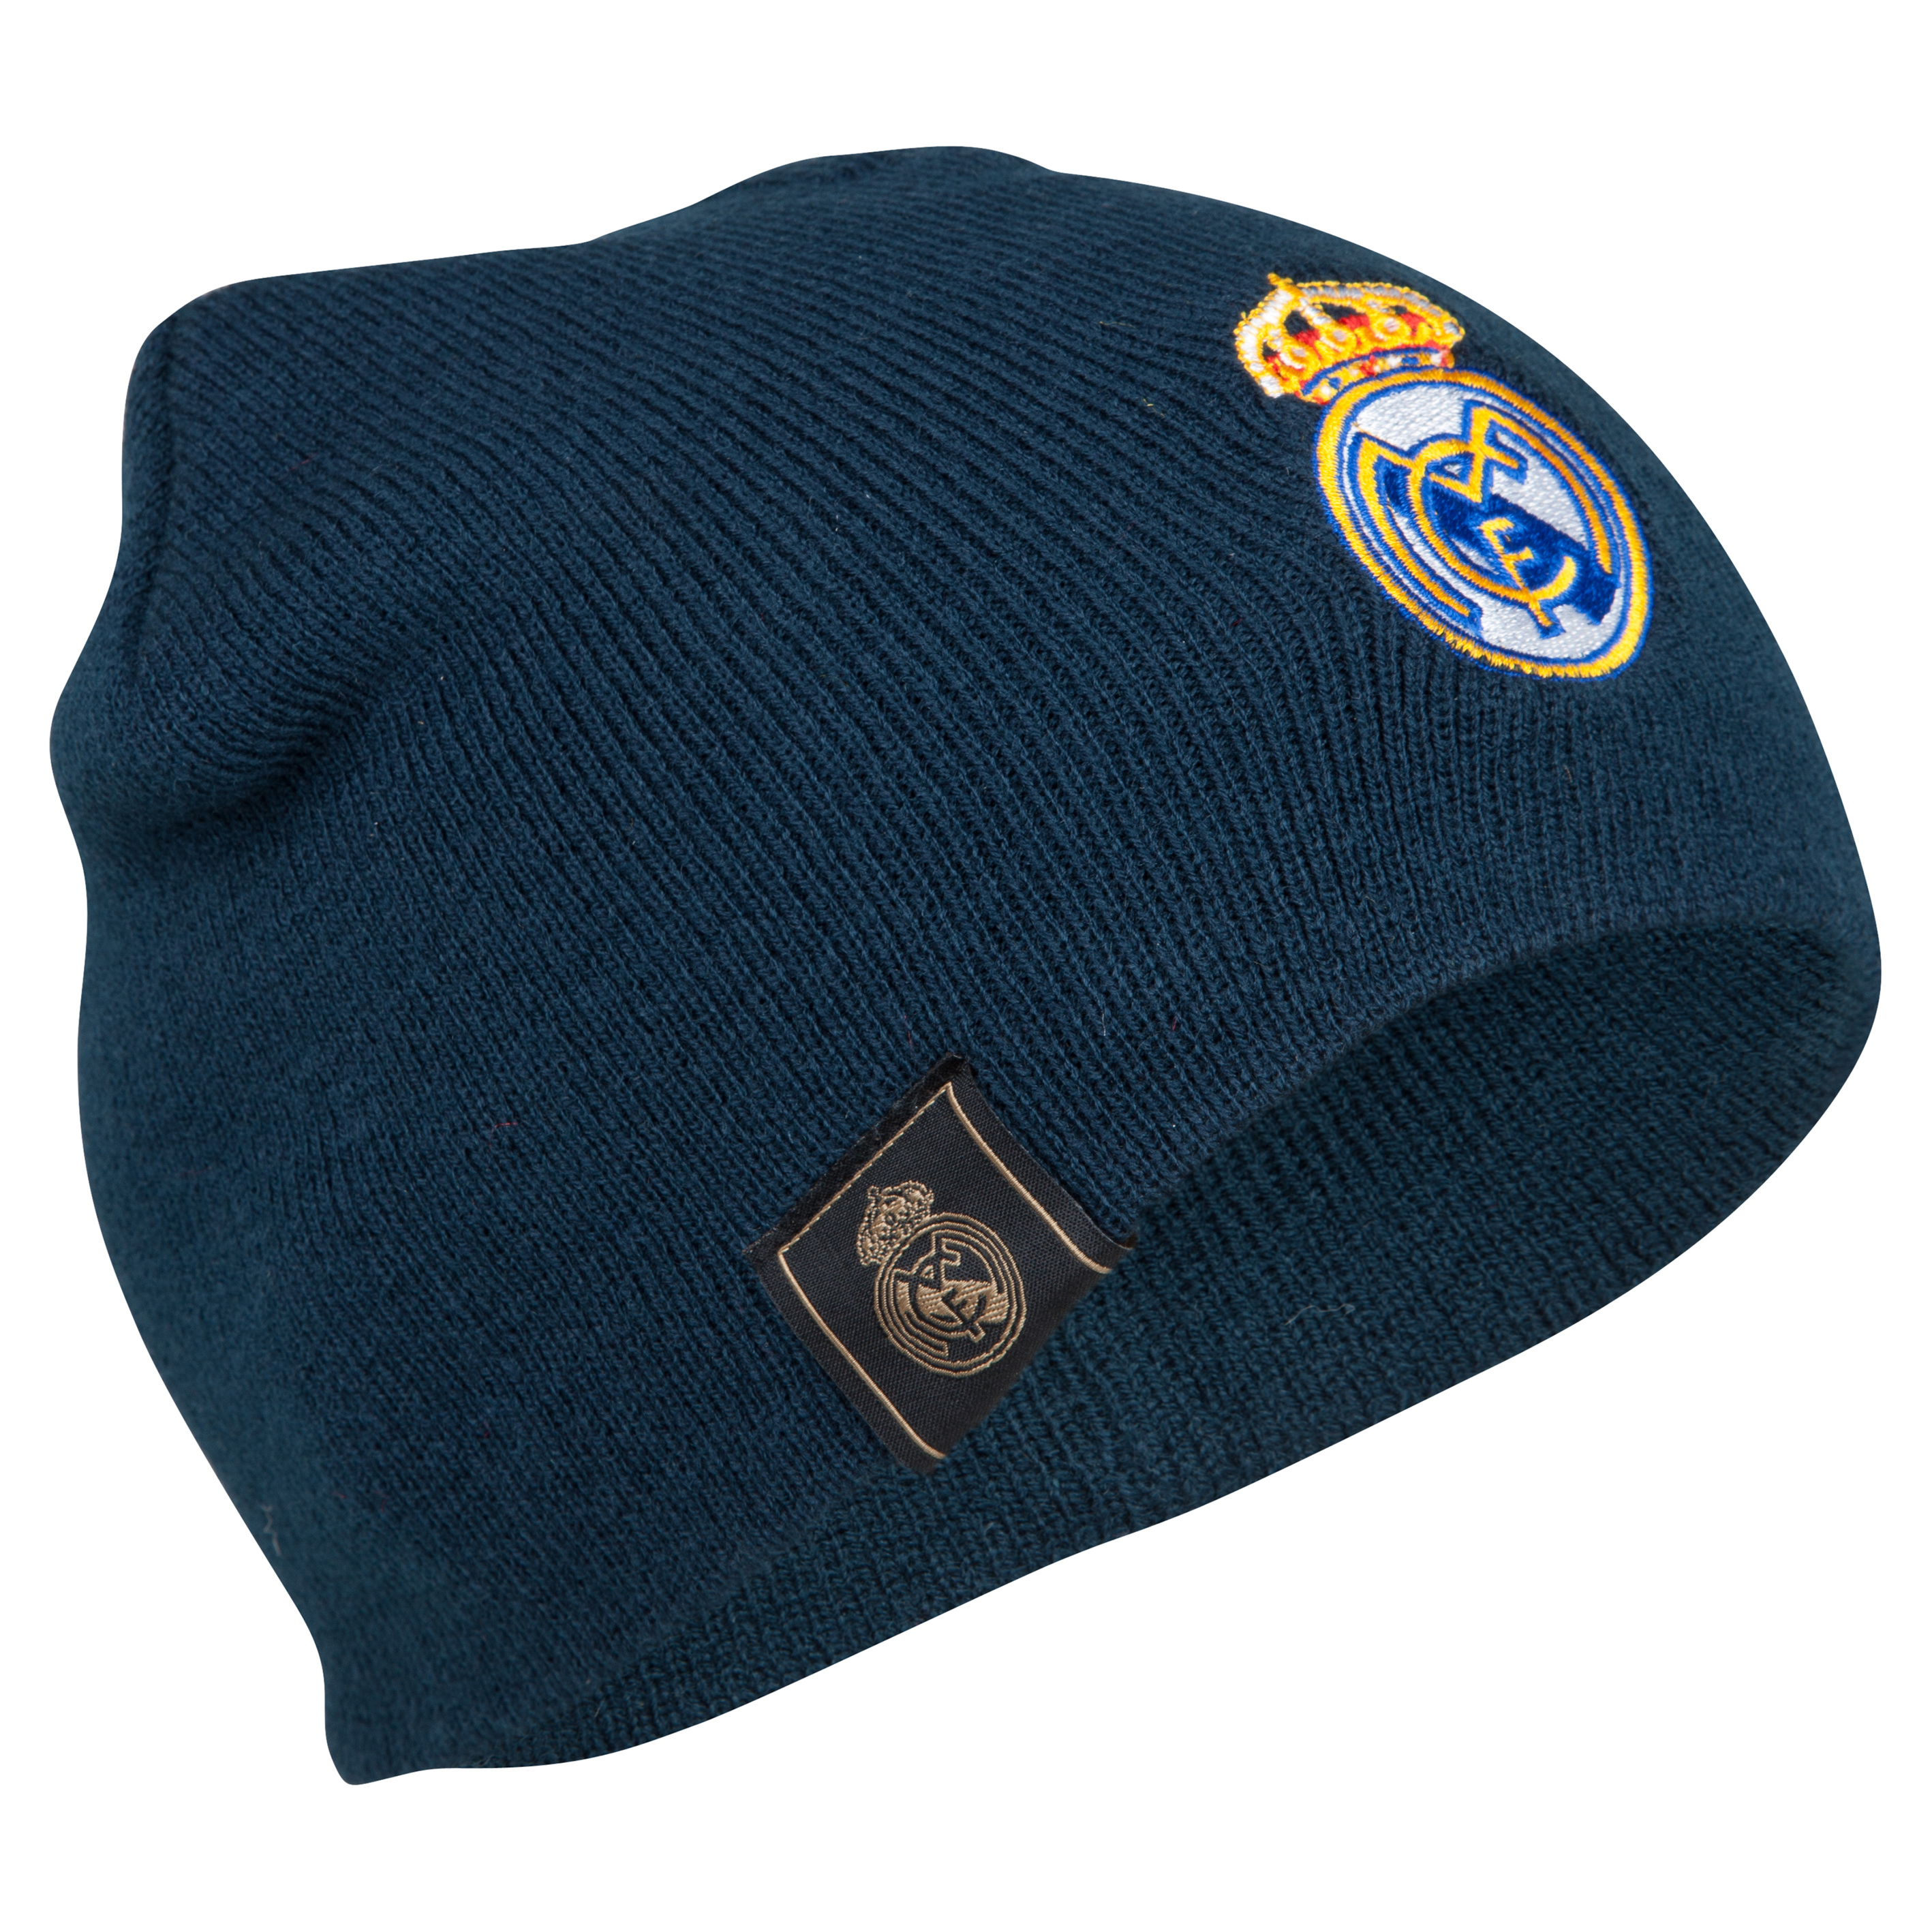 Boina escudo Real Madrid - Azul